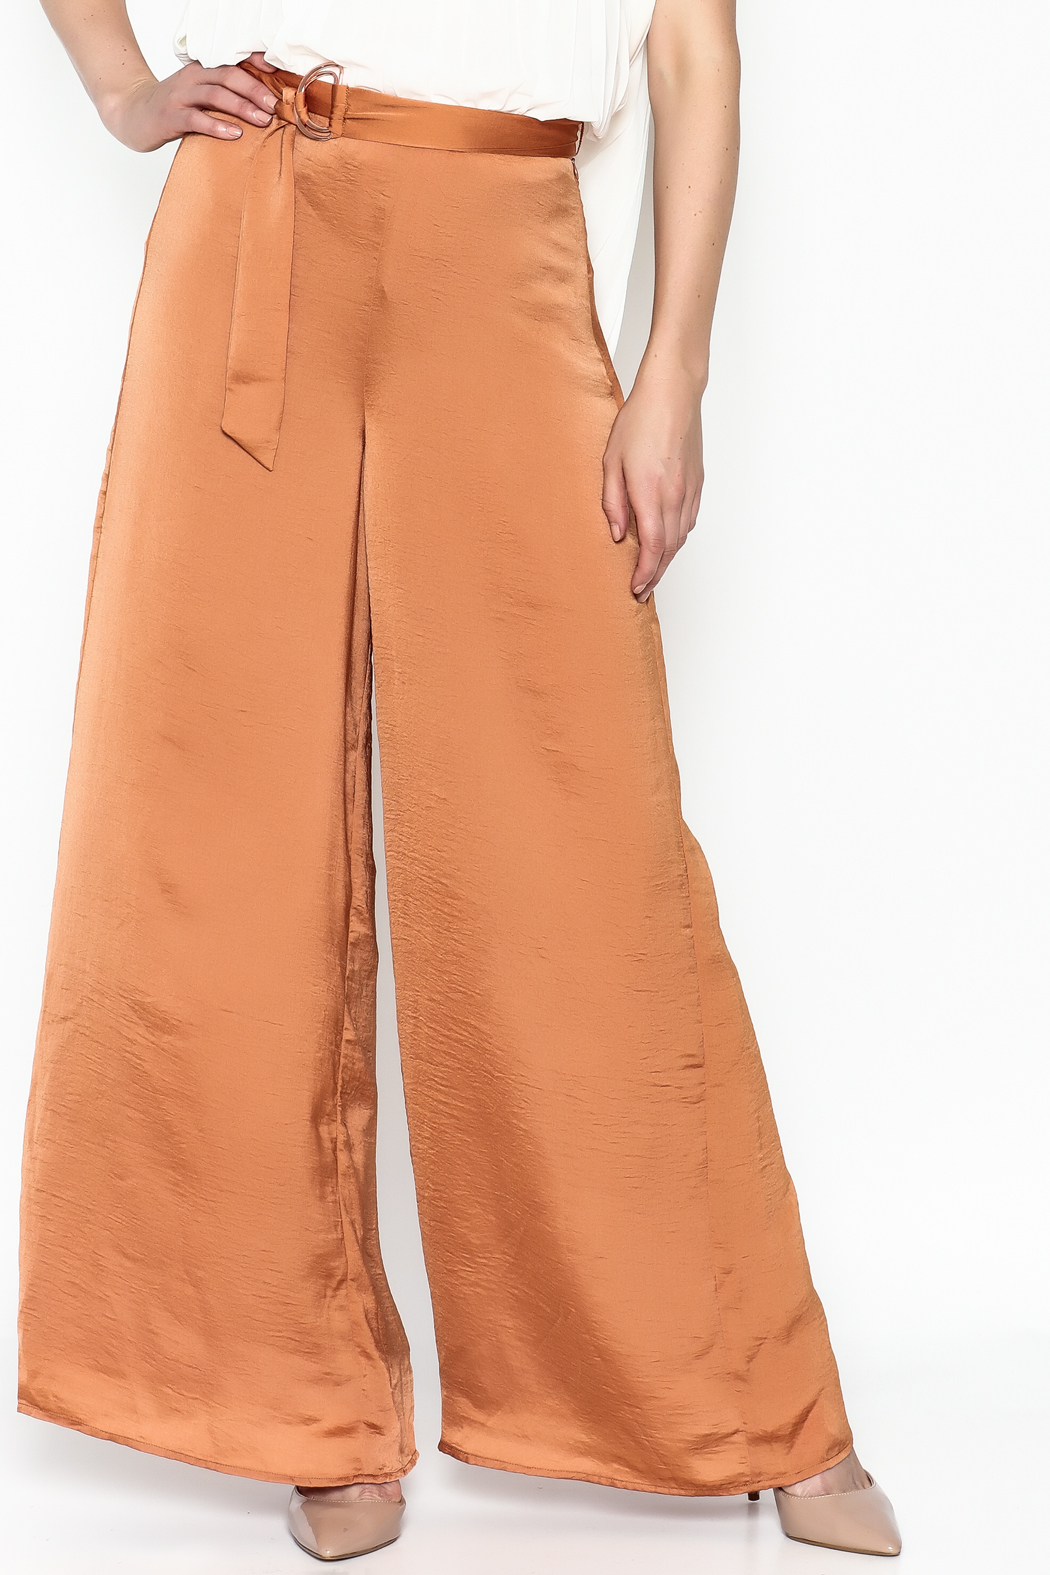 Lucy Paris Terra Cotta Pants - Front Cropped Image